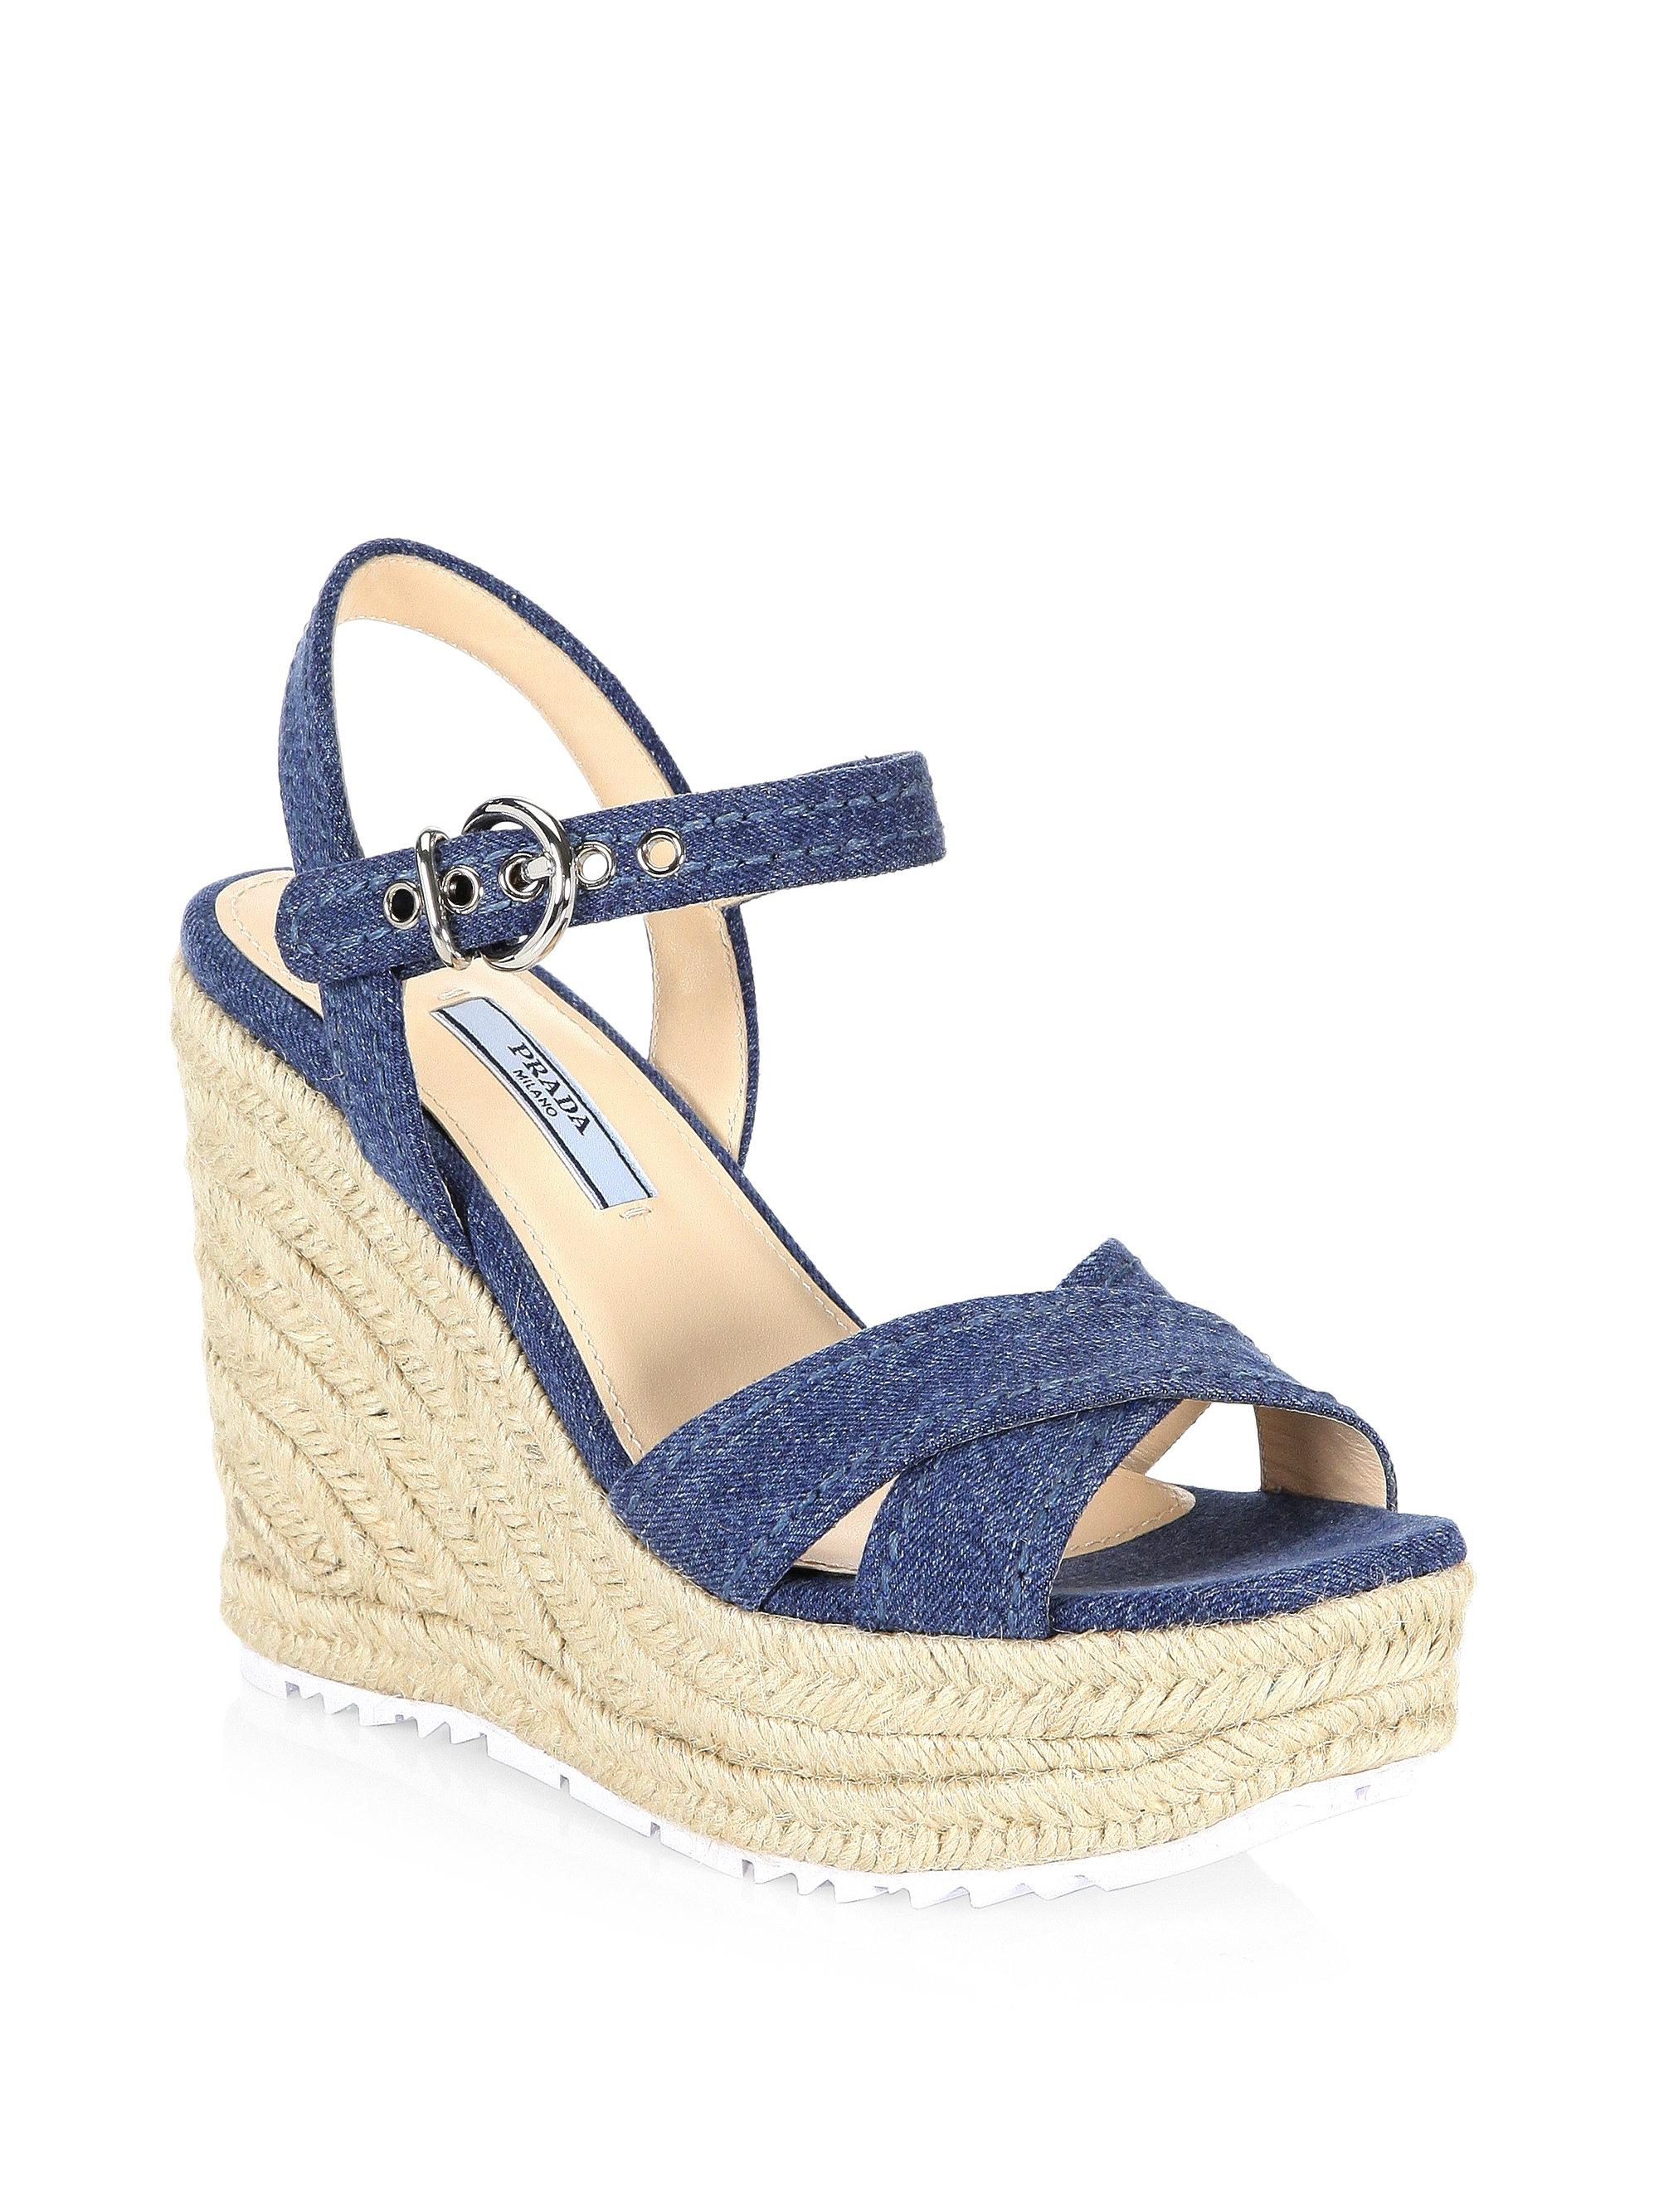 Prada Denim & Raffia Wedge Sandals 8dCJJ